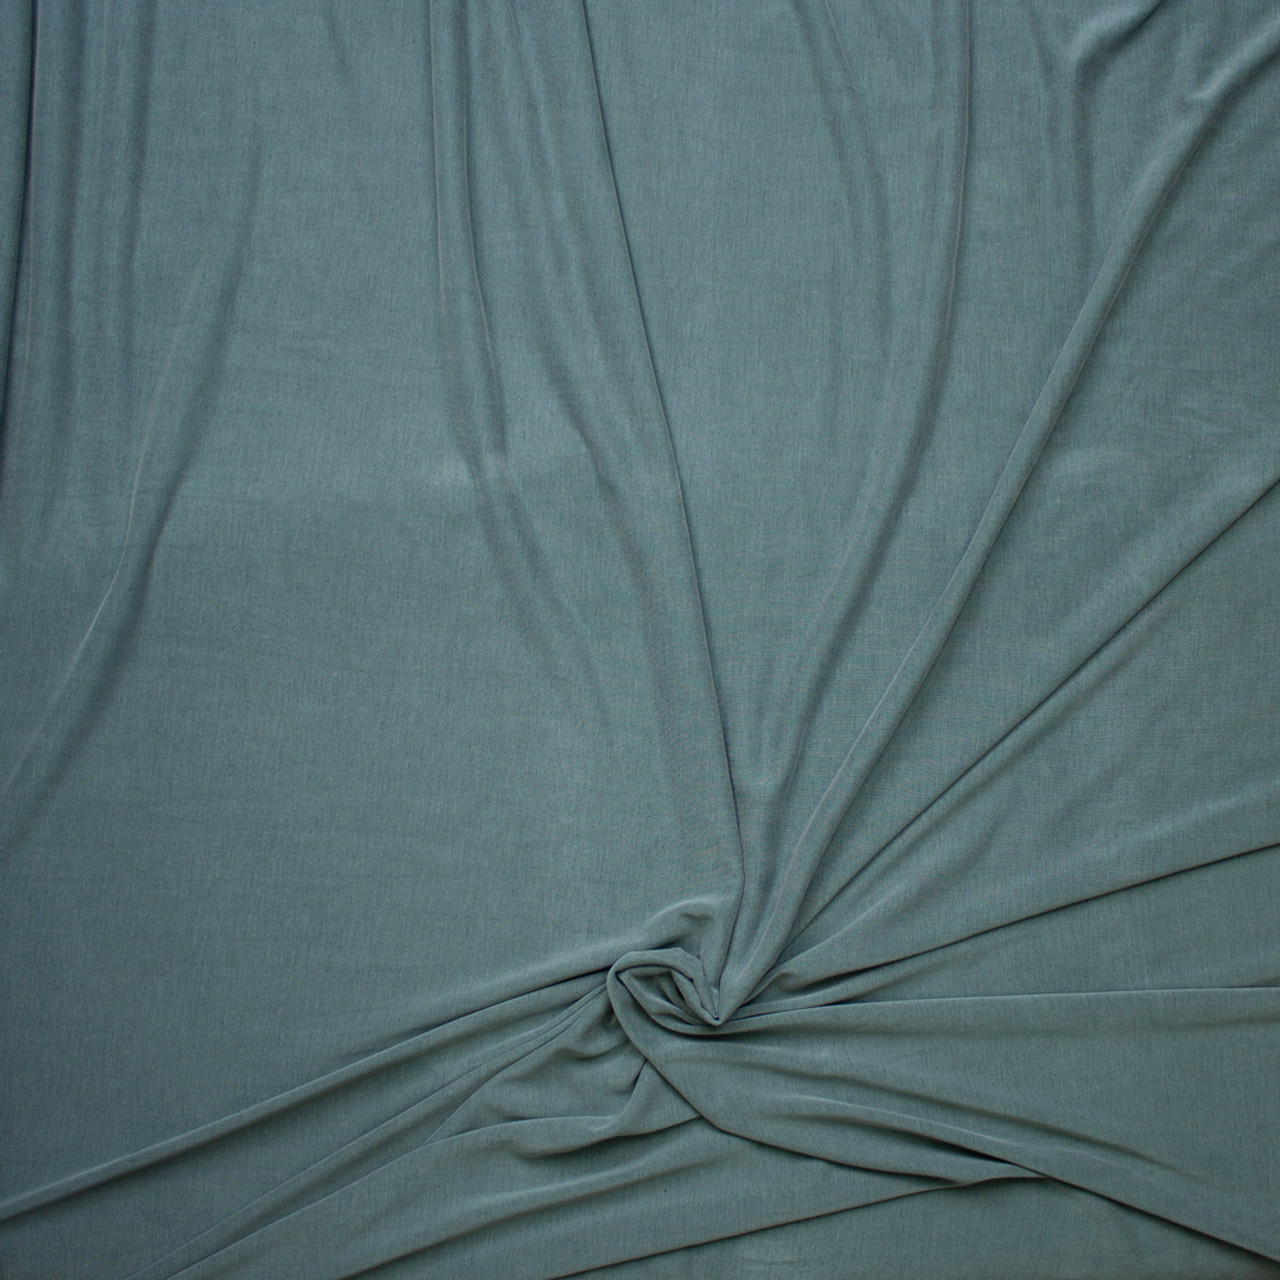 9fc6c5eaed7 ... Jade Brushed Poly/Modal Jersey Knit Fabric By The Yard - Wide shot